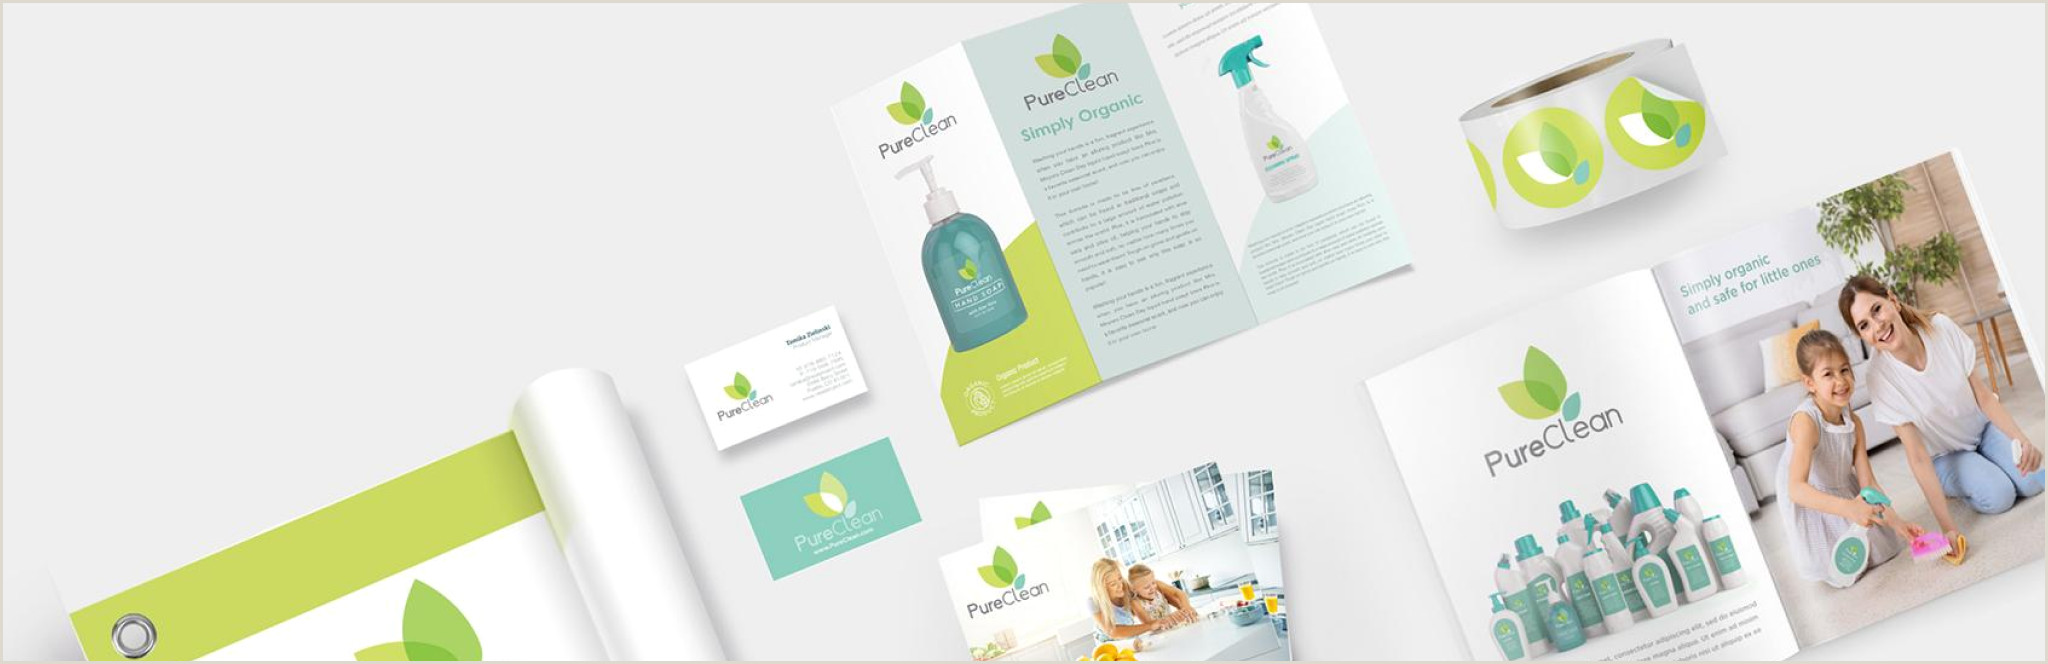 How To Make A Business Card Template Printplace High Quality Line Printing Services